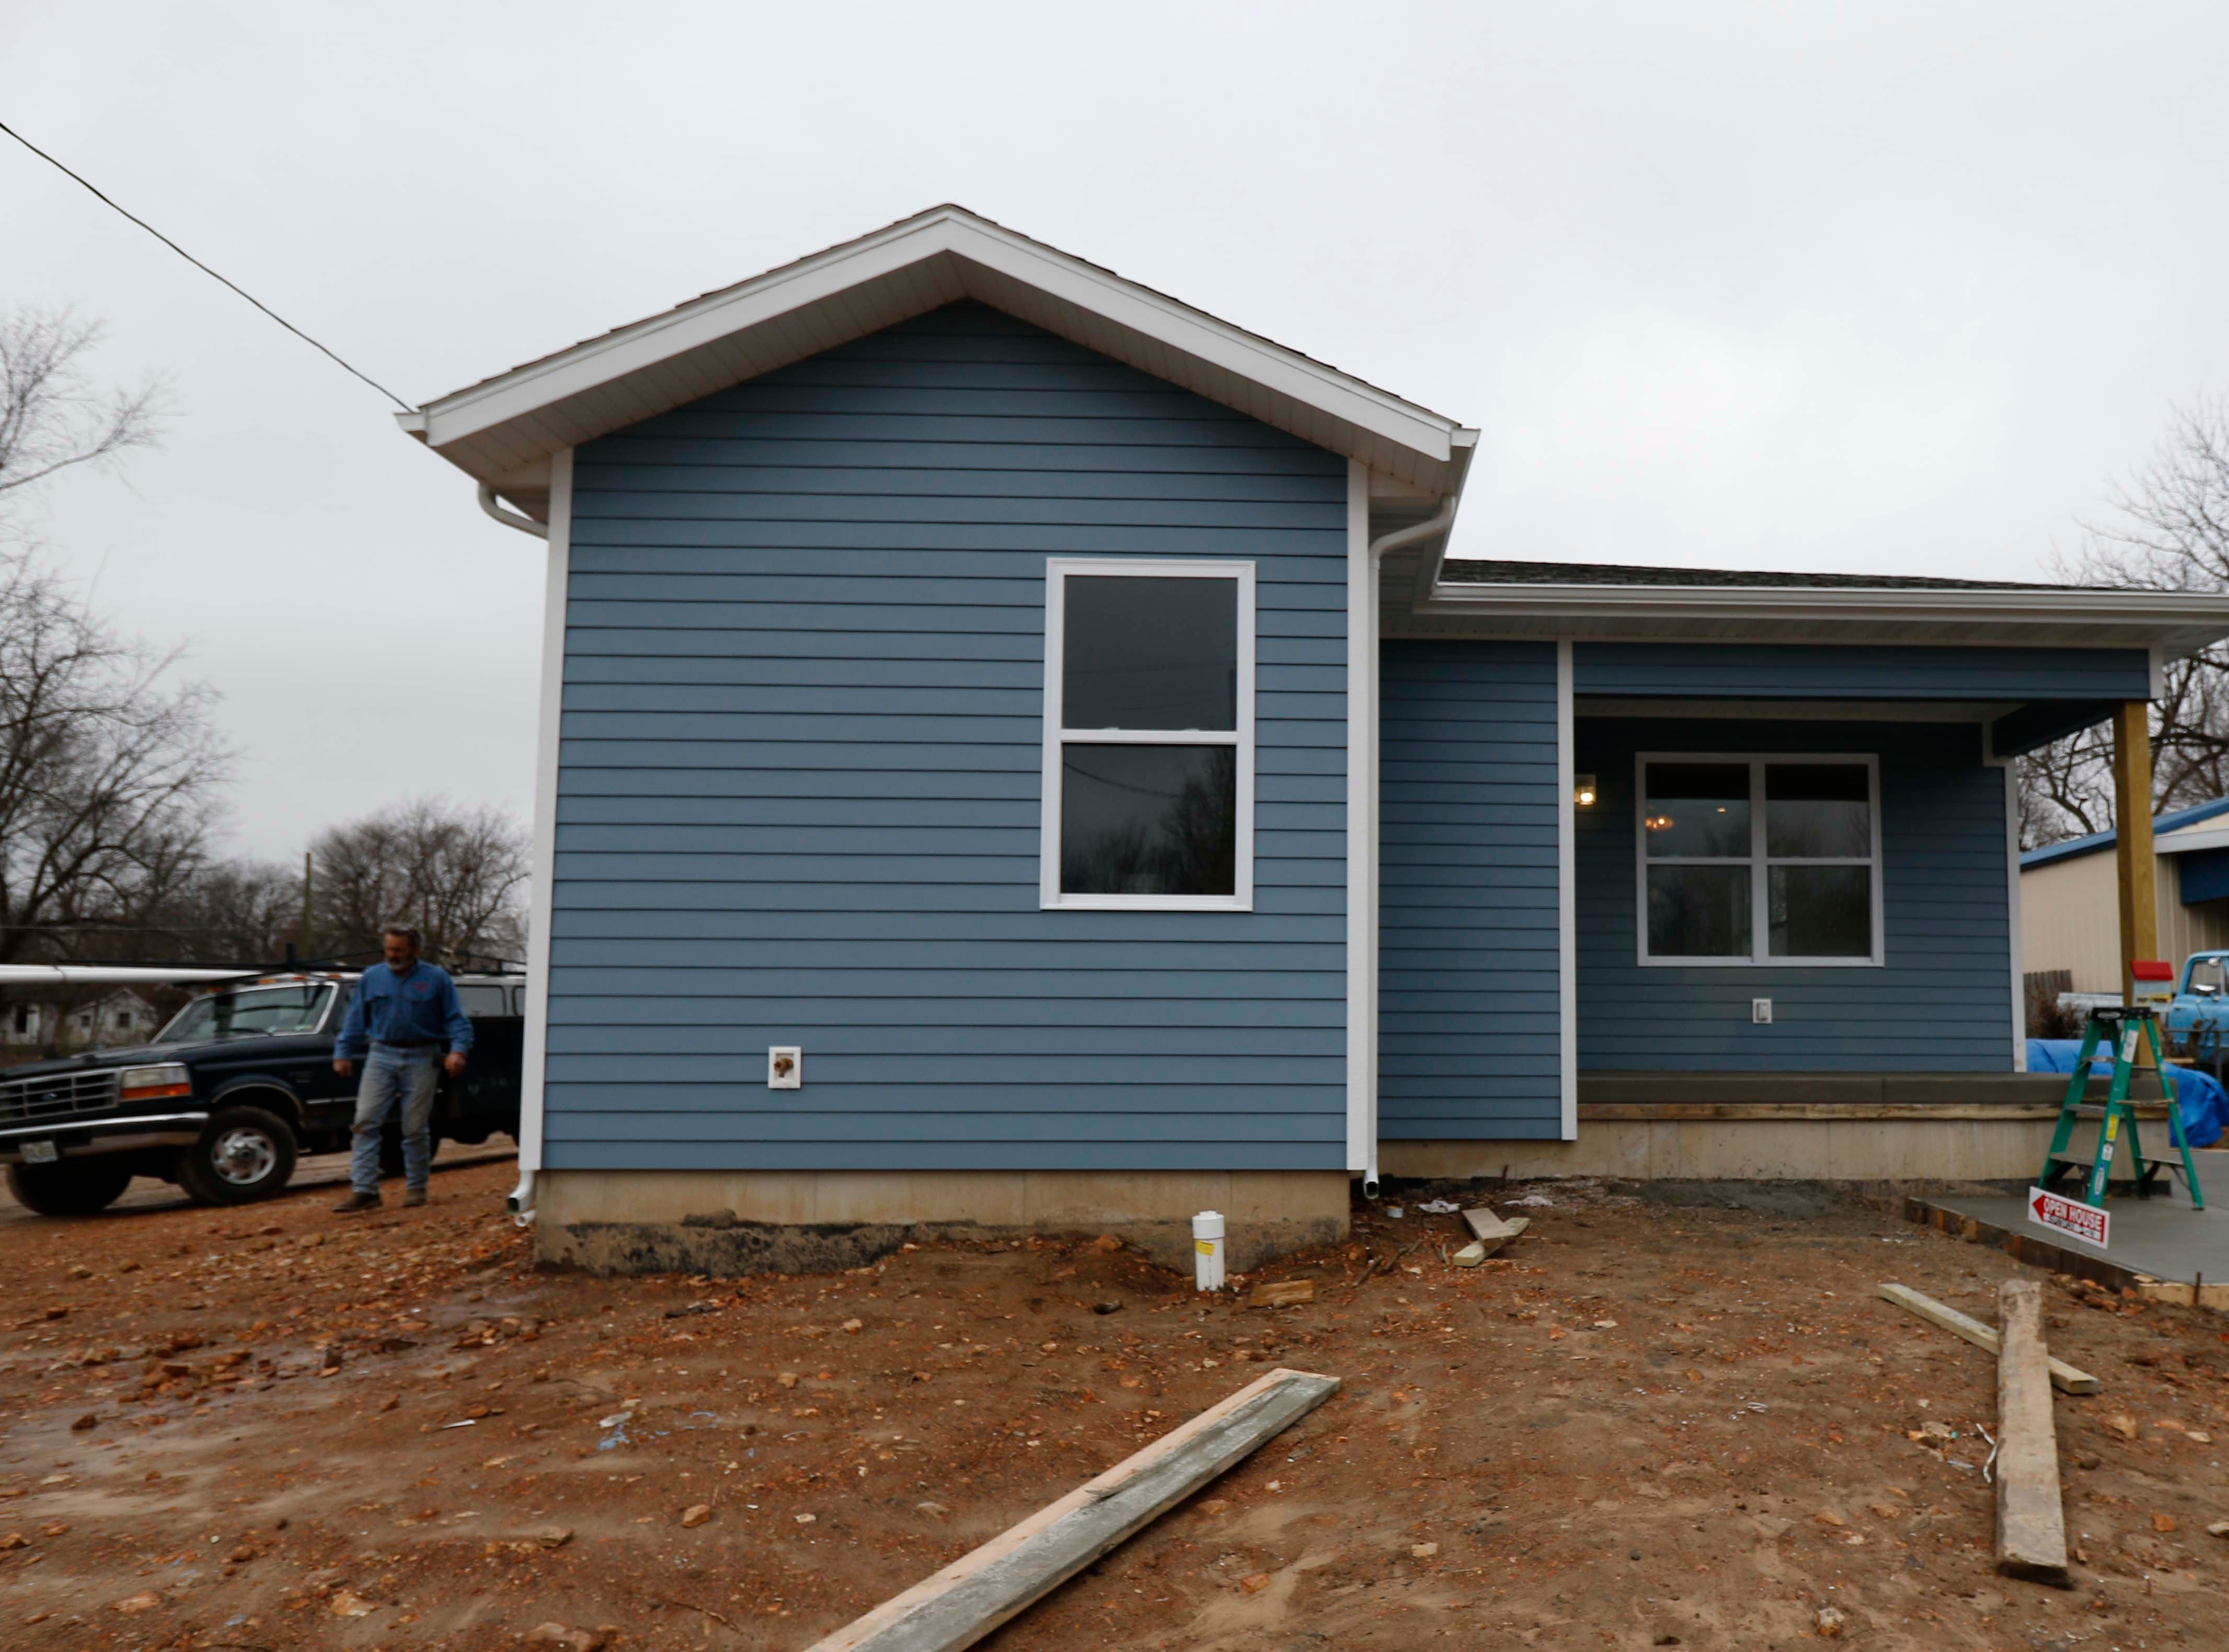 Images from the new Habitat for Humanity house on North Main in Springfield on Jan. 18, 2019..